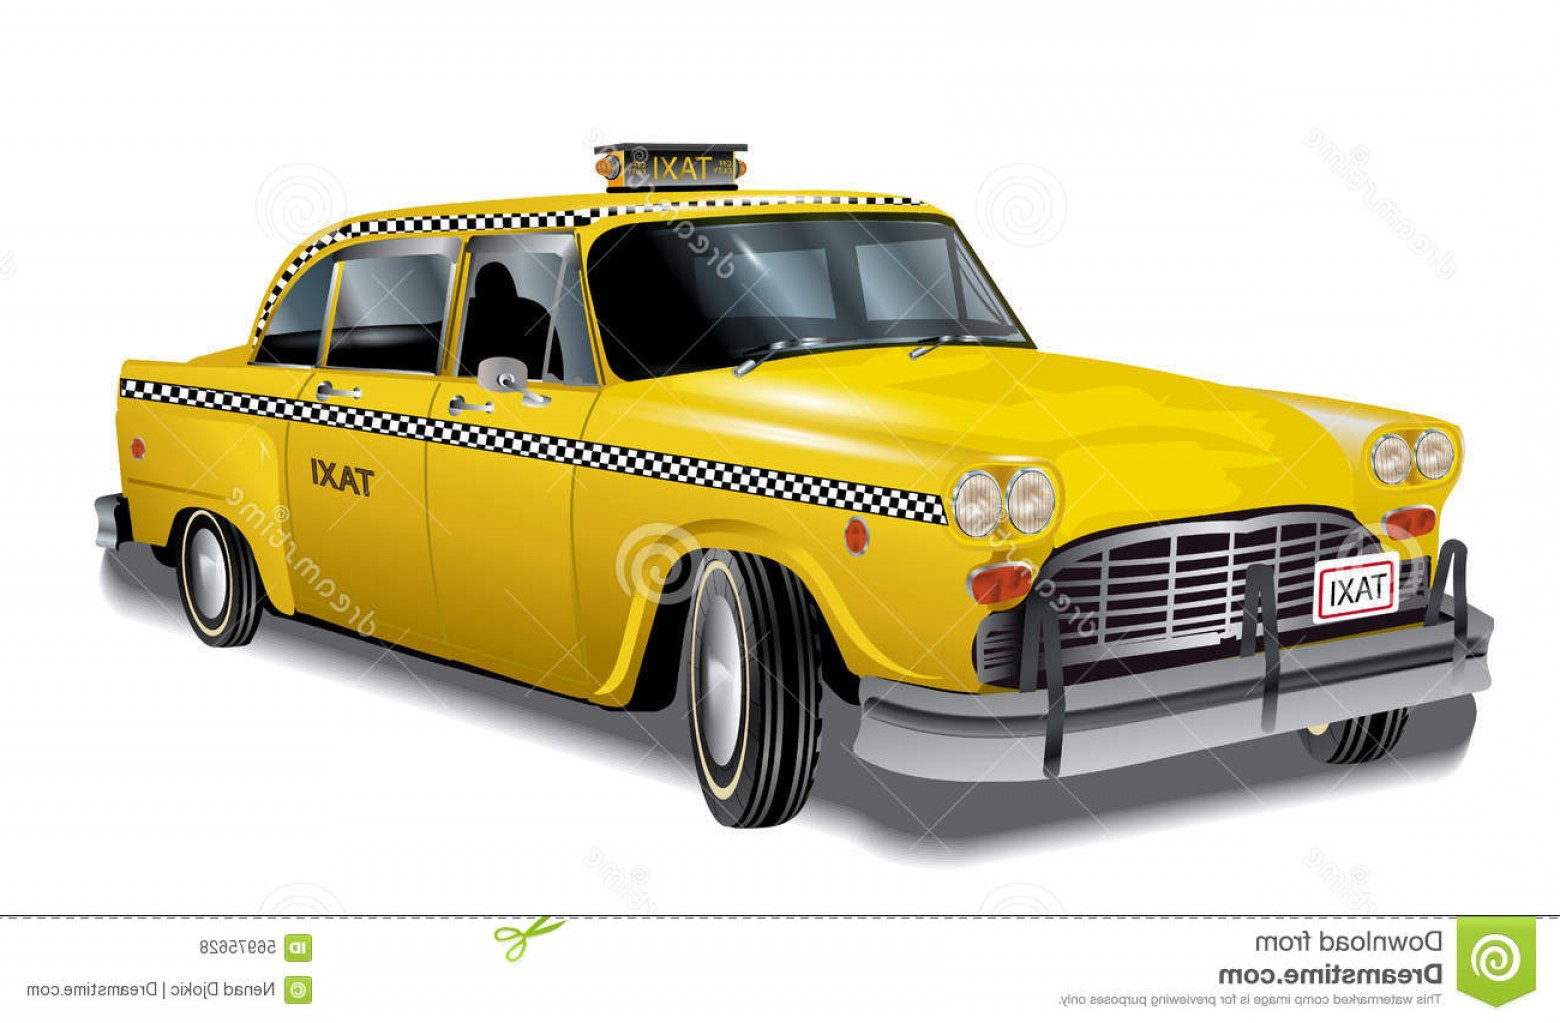 New York Taxi Cab Vector: Stock Illustration Retro Yellow Taxi Vector New York Cab S Image